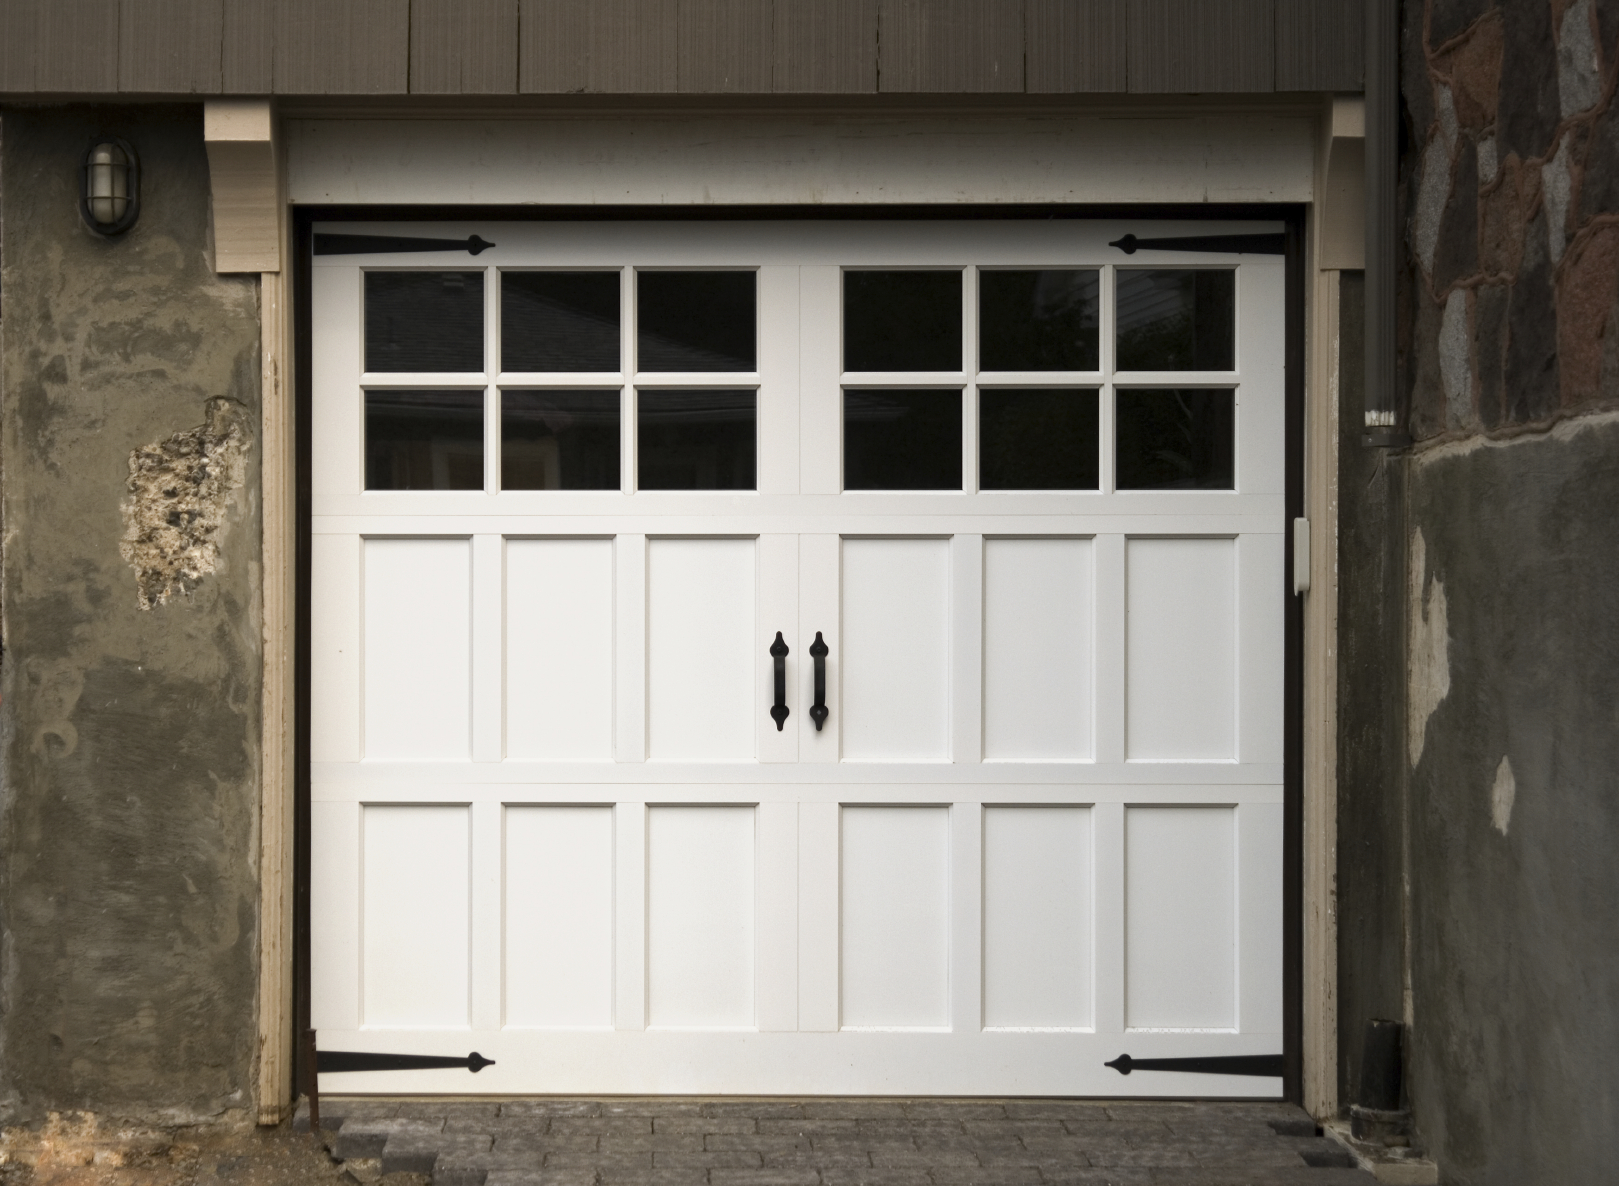 1186 #7D6A4E Carriage Style Garage Doors Carroll Garage Doors picture/photo Garages Doors 36391619